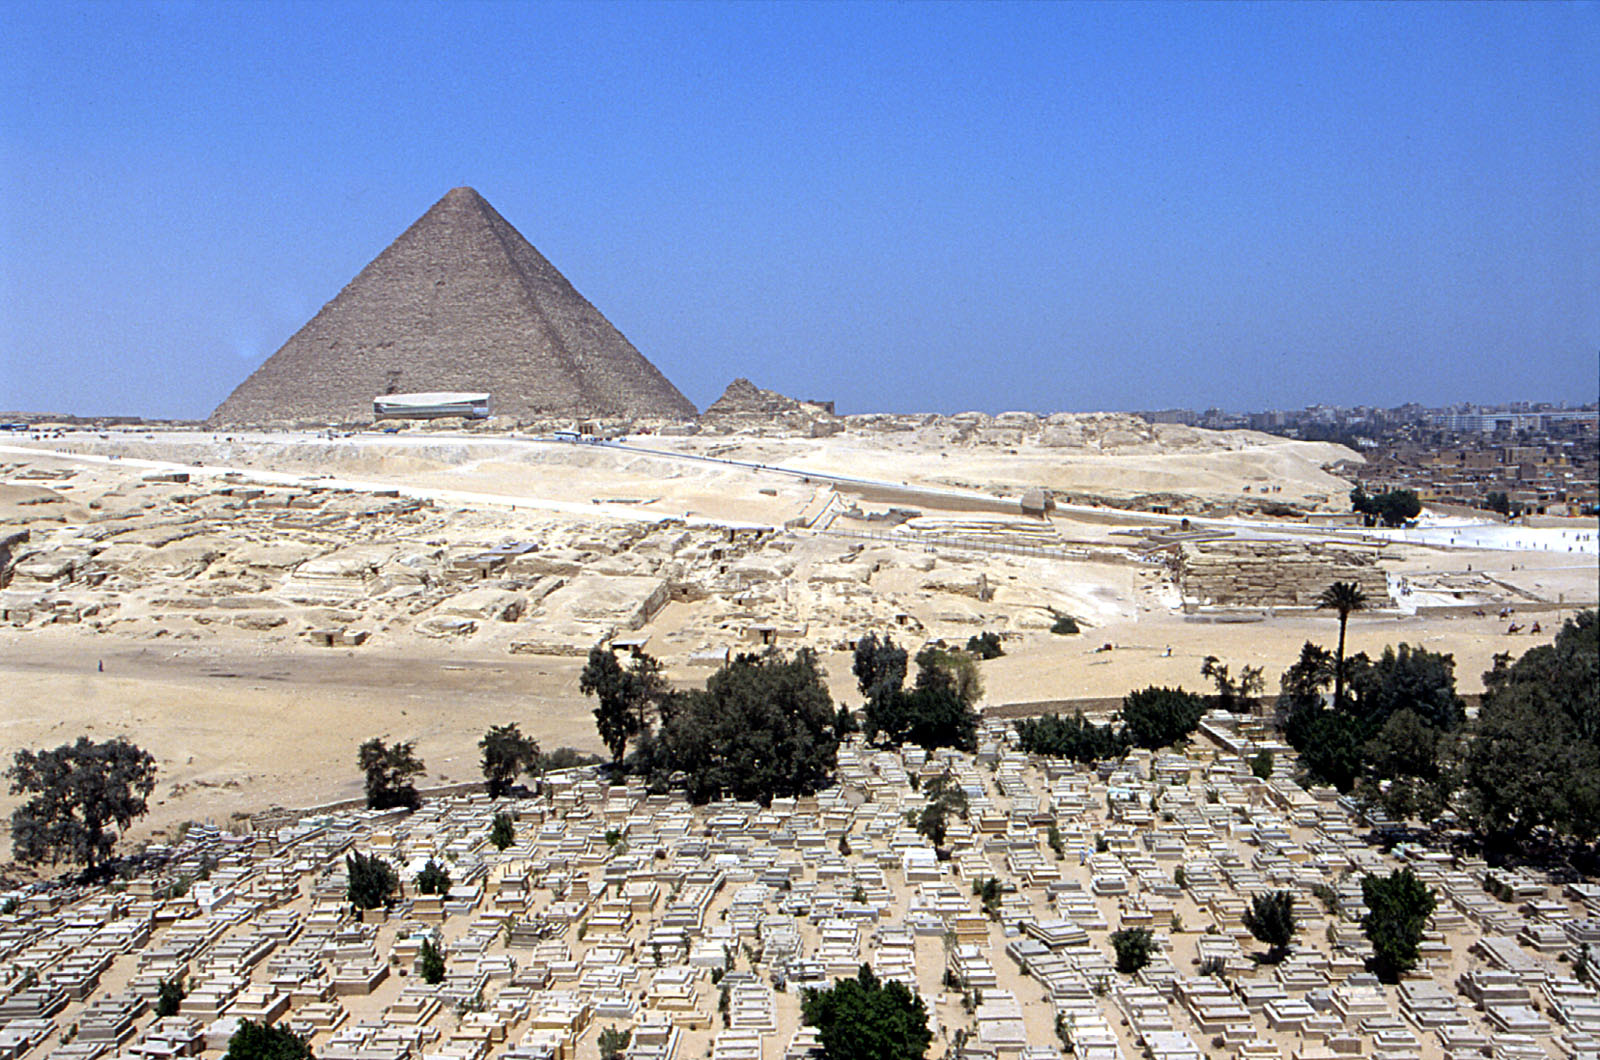 Central Field (Hassan): Site: Giza; View: Central Field, Khufu Pyramid, Sphinx